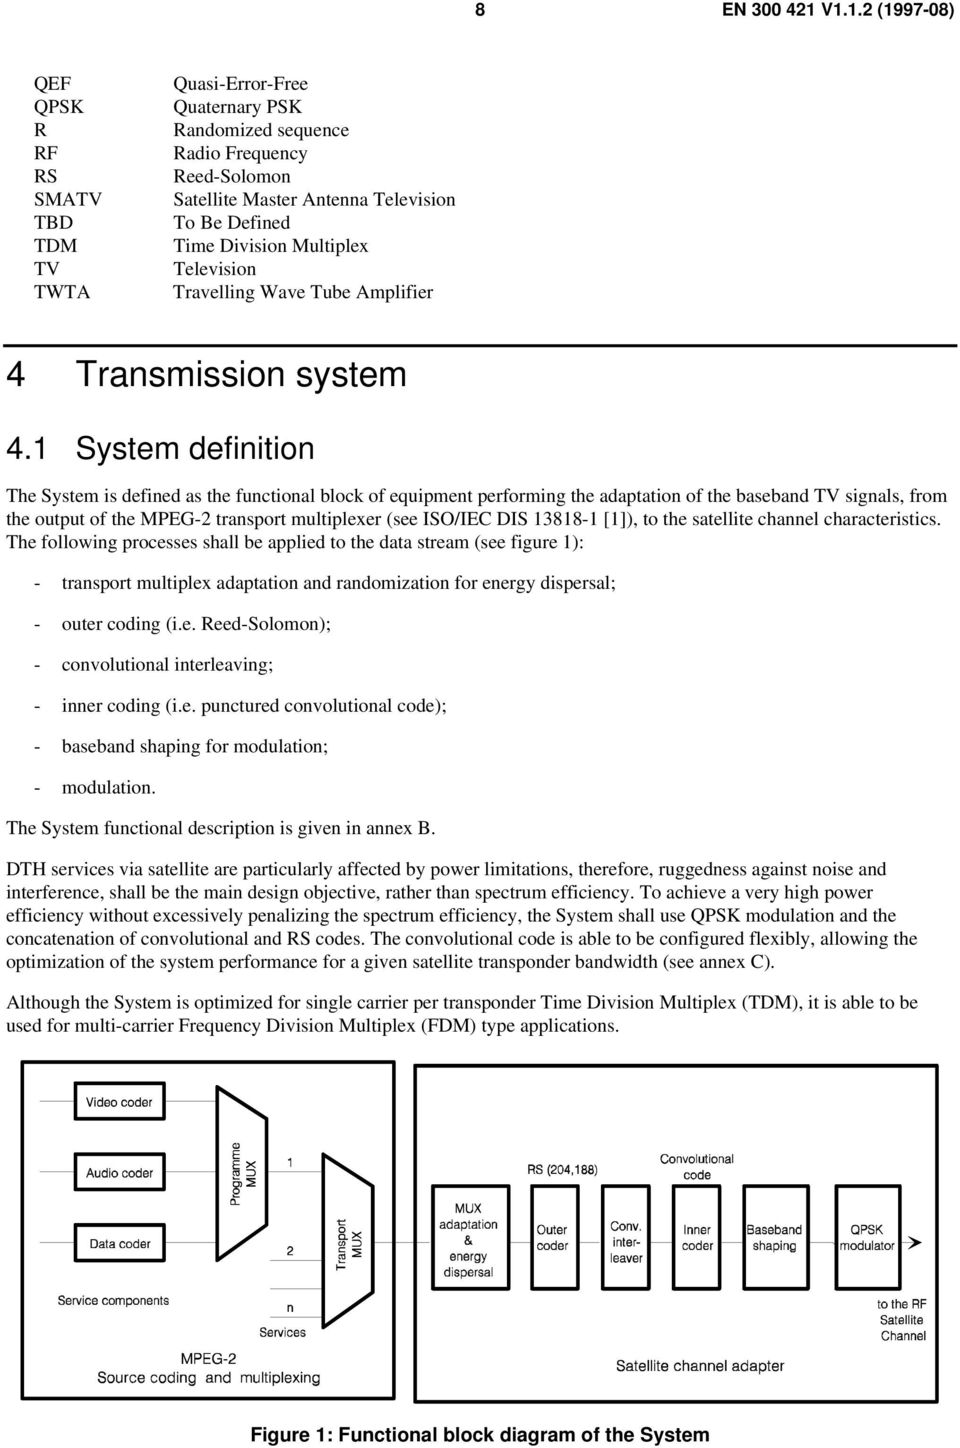 1 System definition The System is defined as the functional block of equipment performing the adaptation of the baseband TV signals, from the output of the MPEG-2 transport multiplexer (see ISO/IEC